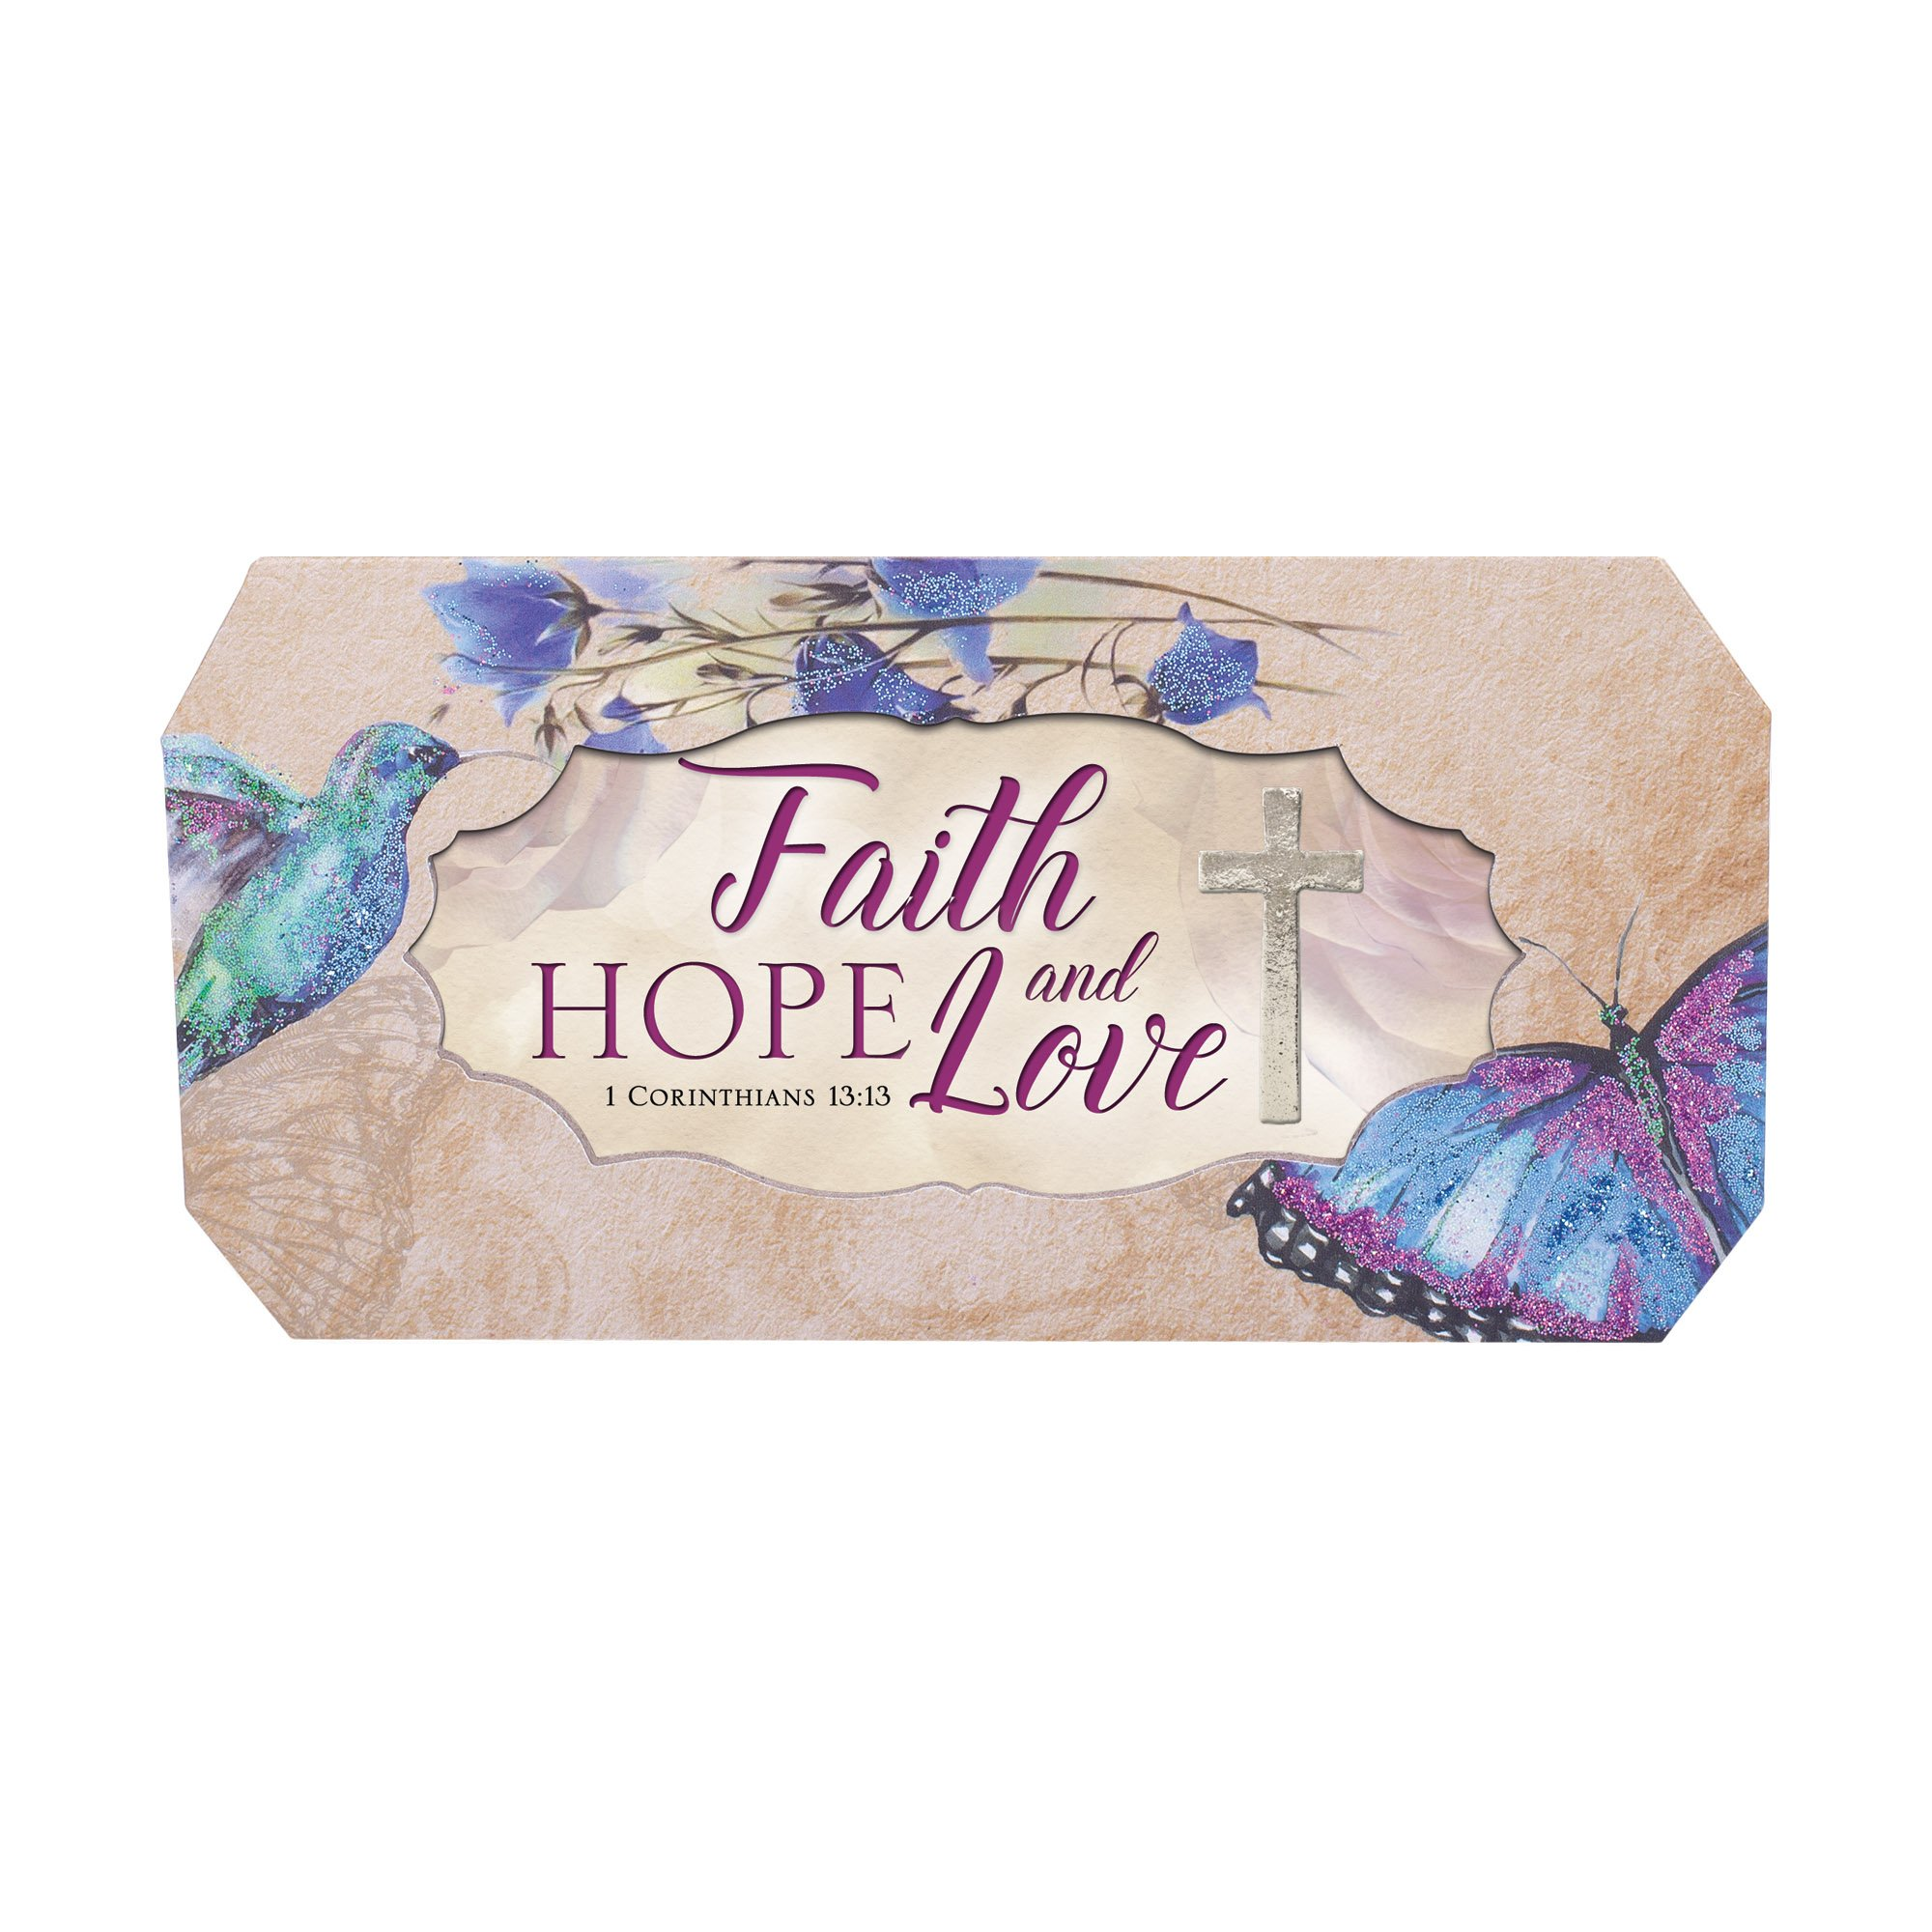 Cottage Garden Faith Hope And Love Butterfly and Bird Glitter Musical Box Plays Tune How Great Thou Art by Cottage Garden (Image #2)